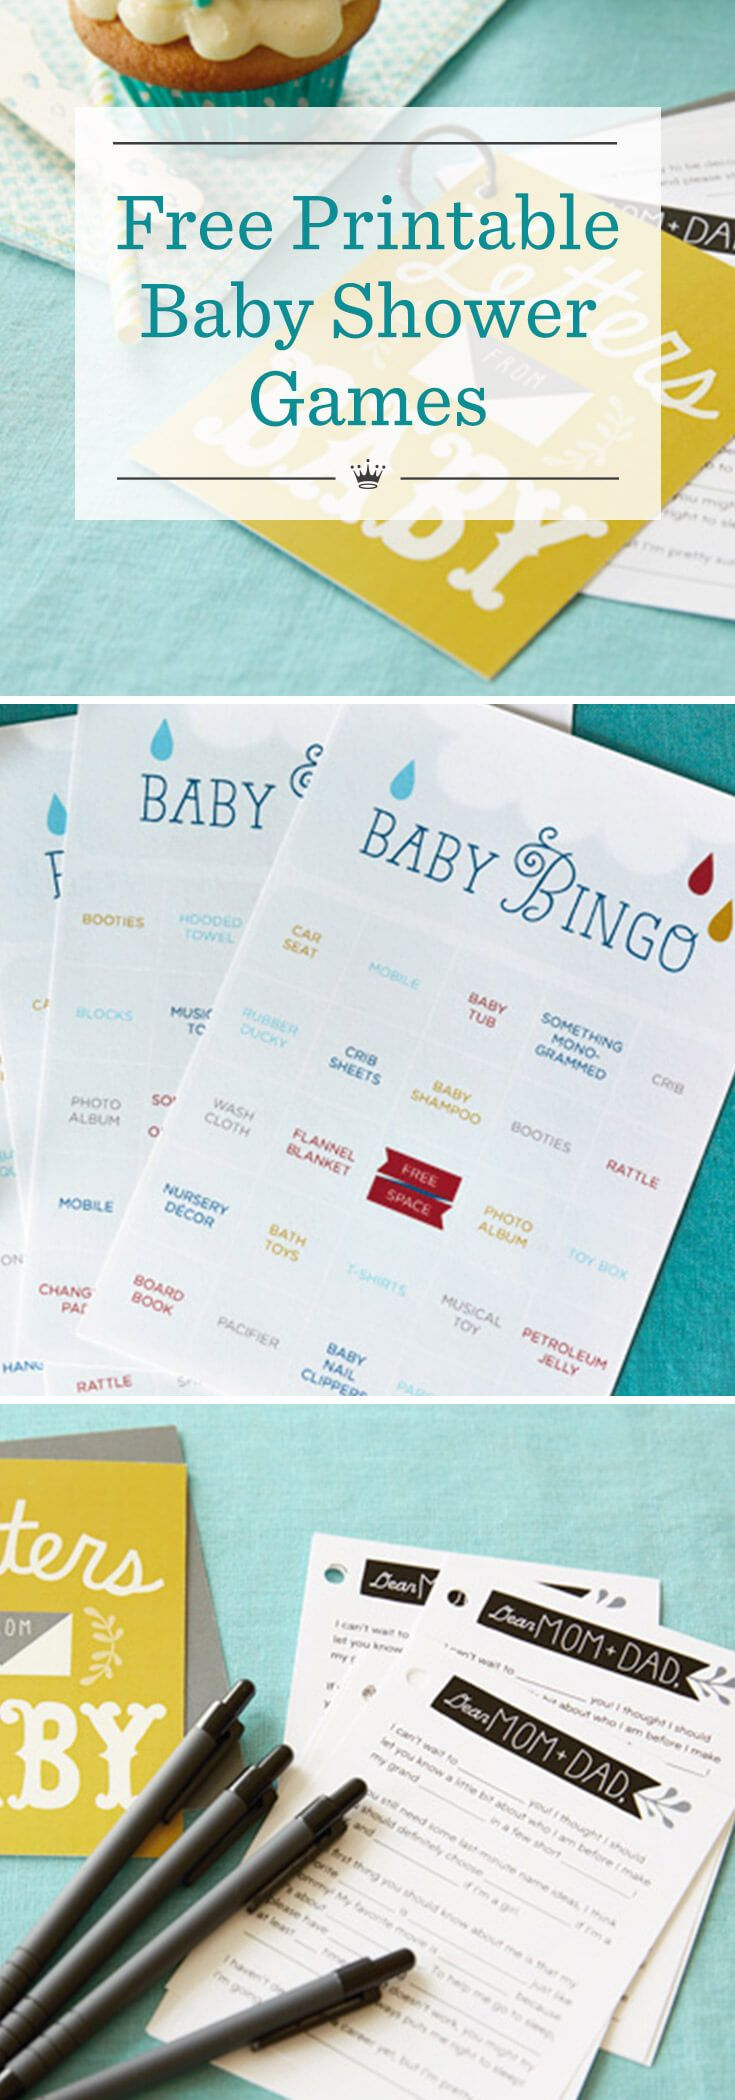 Free printable baby shower games | Baby keepsake book, Fun ...